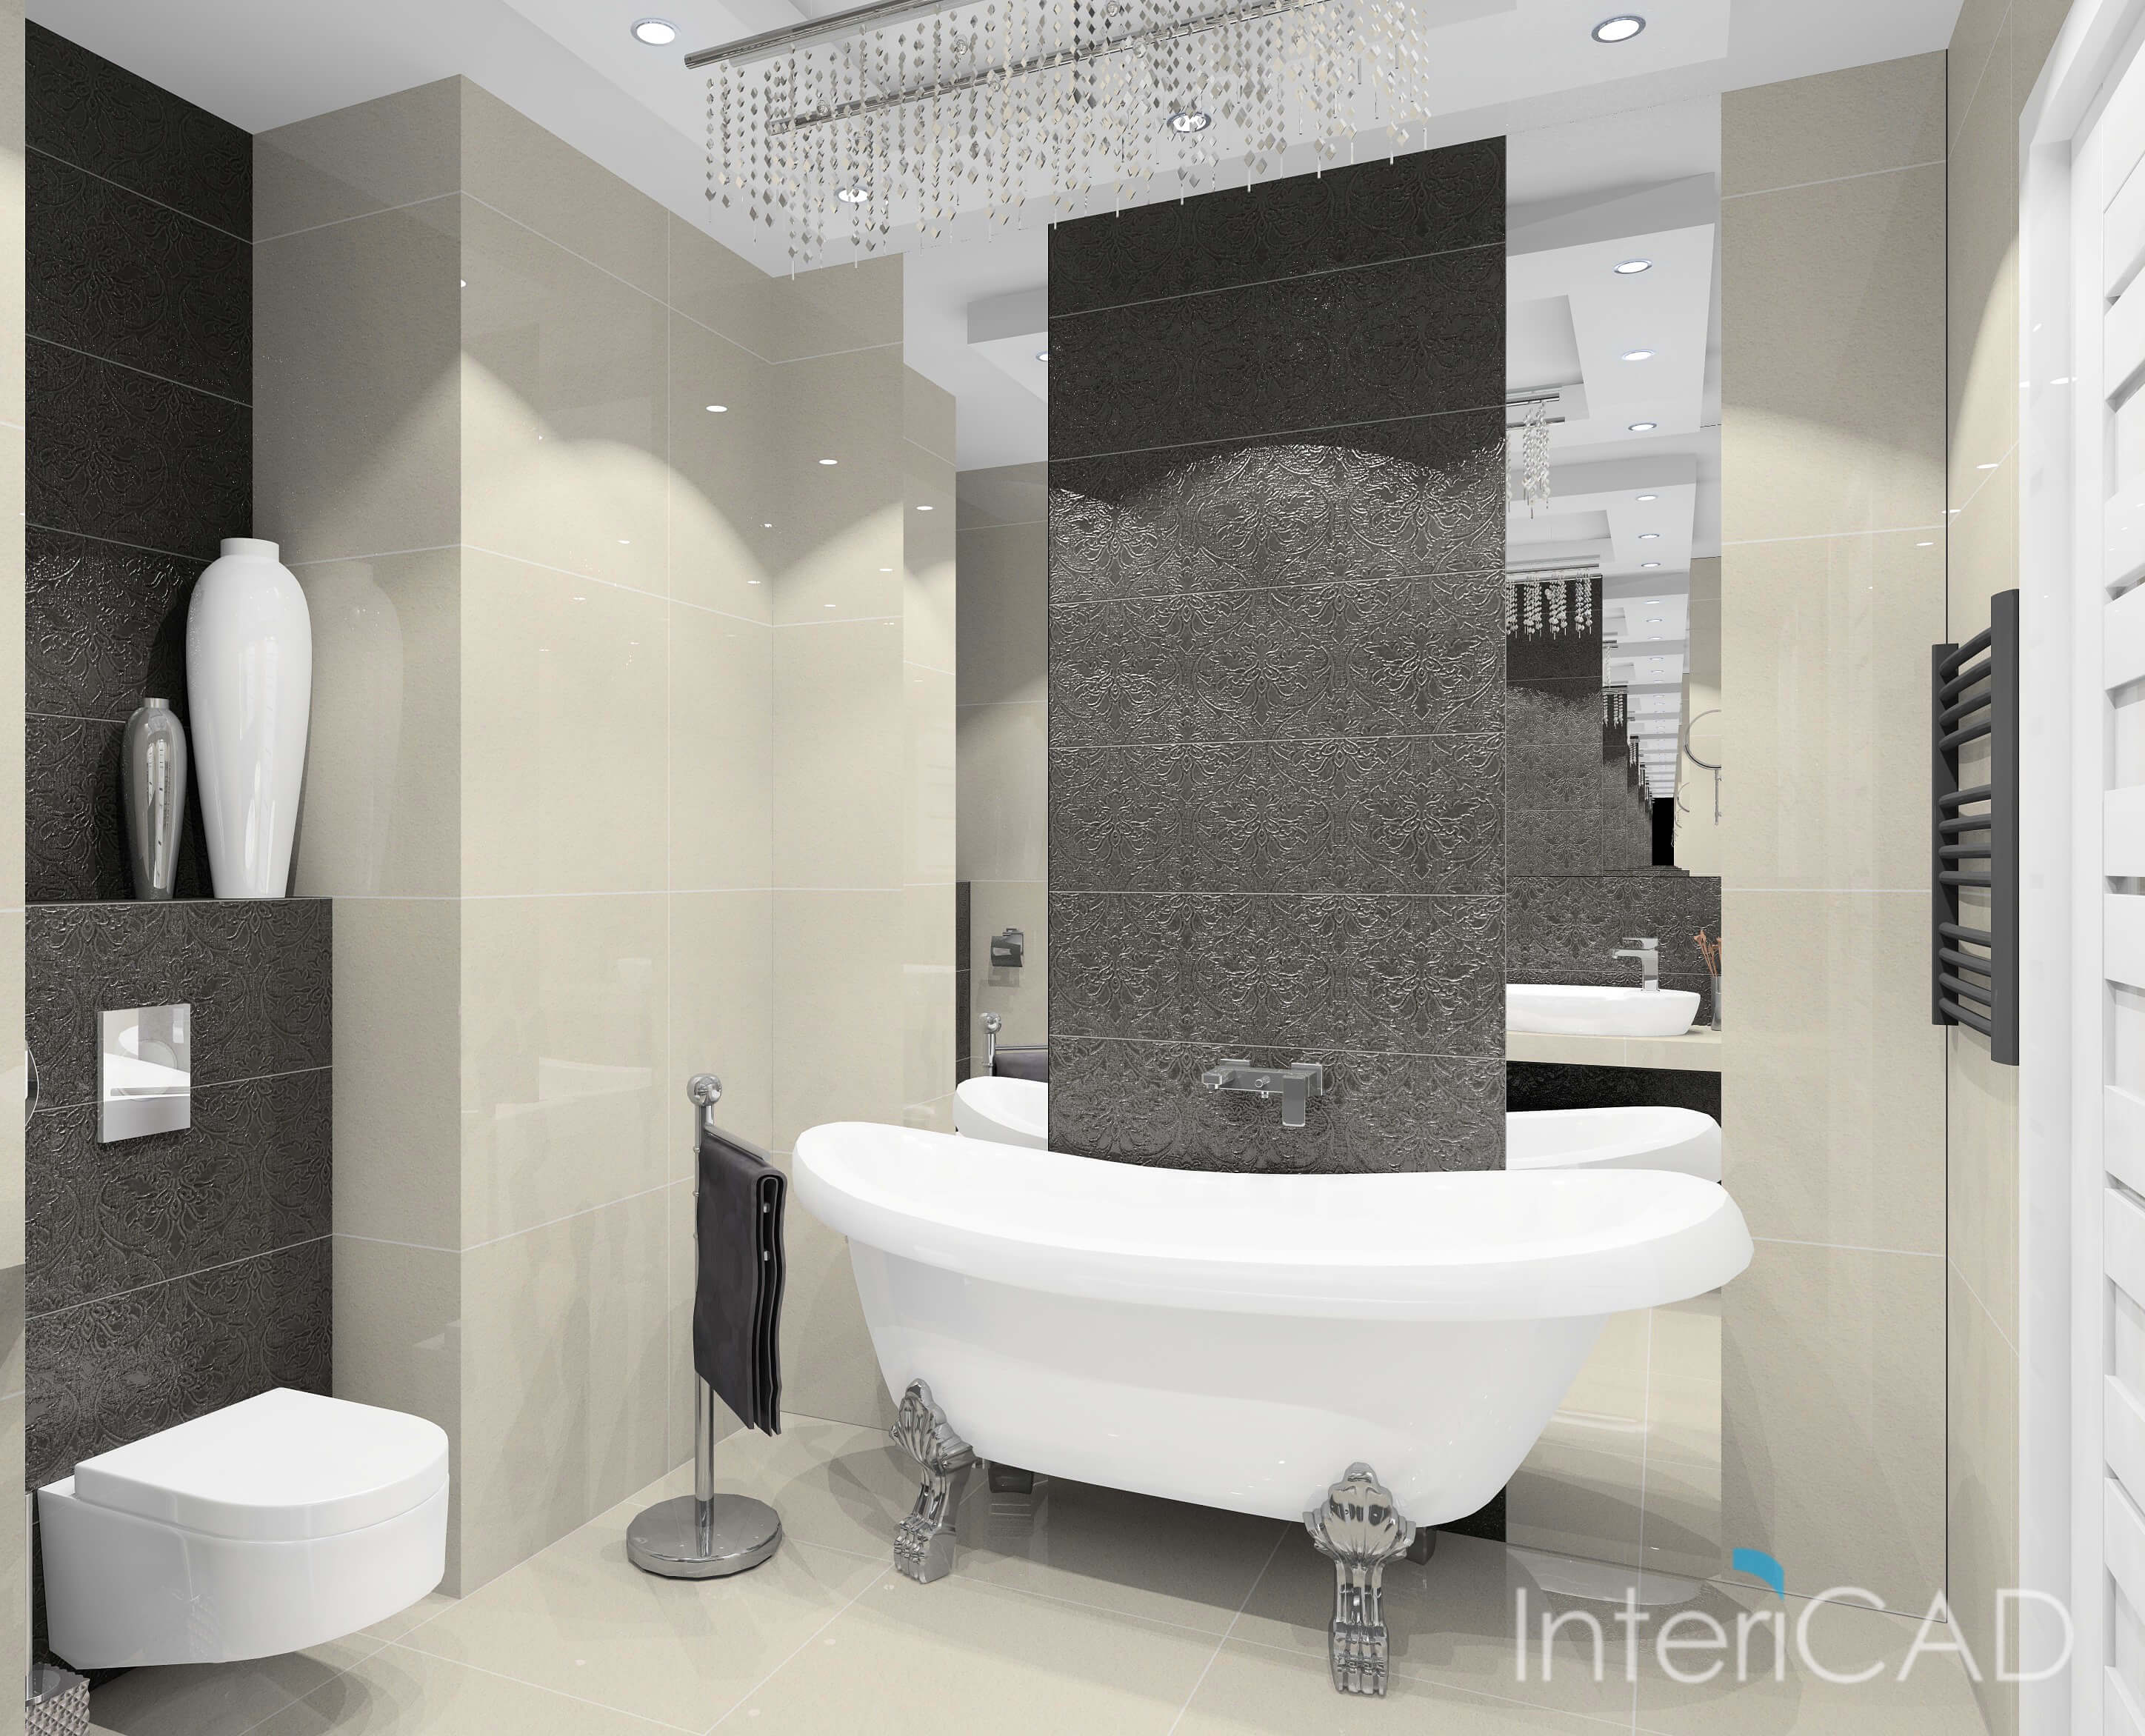 projets 3d salle de bain intericad. Black Bedroom Furniture Sets. Home Design Ideas